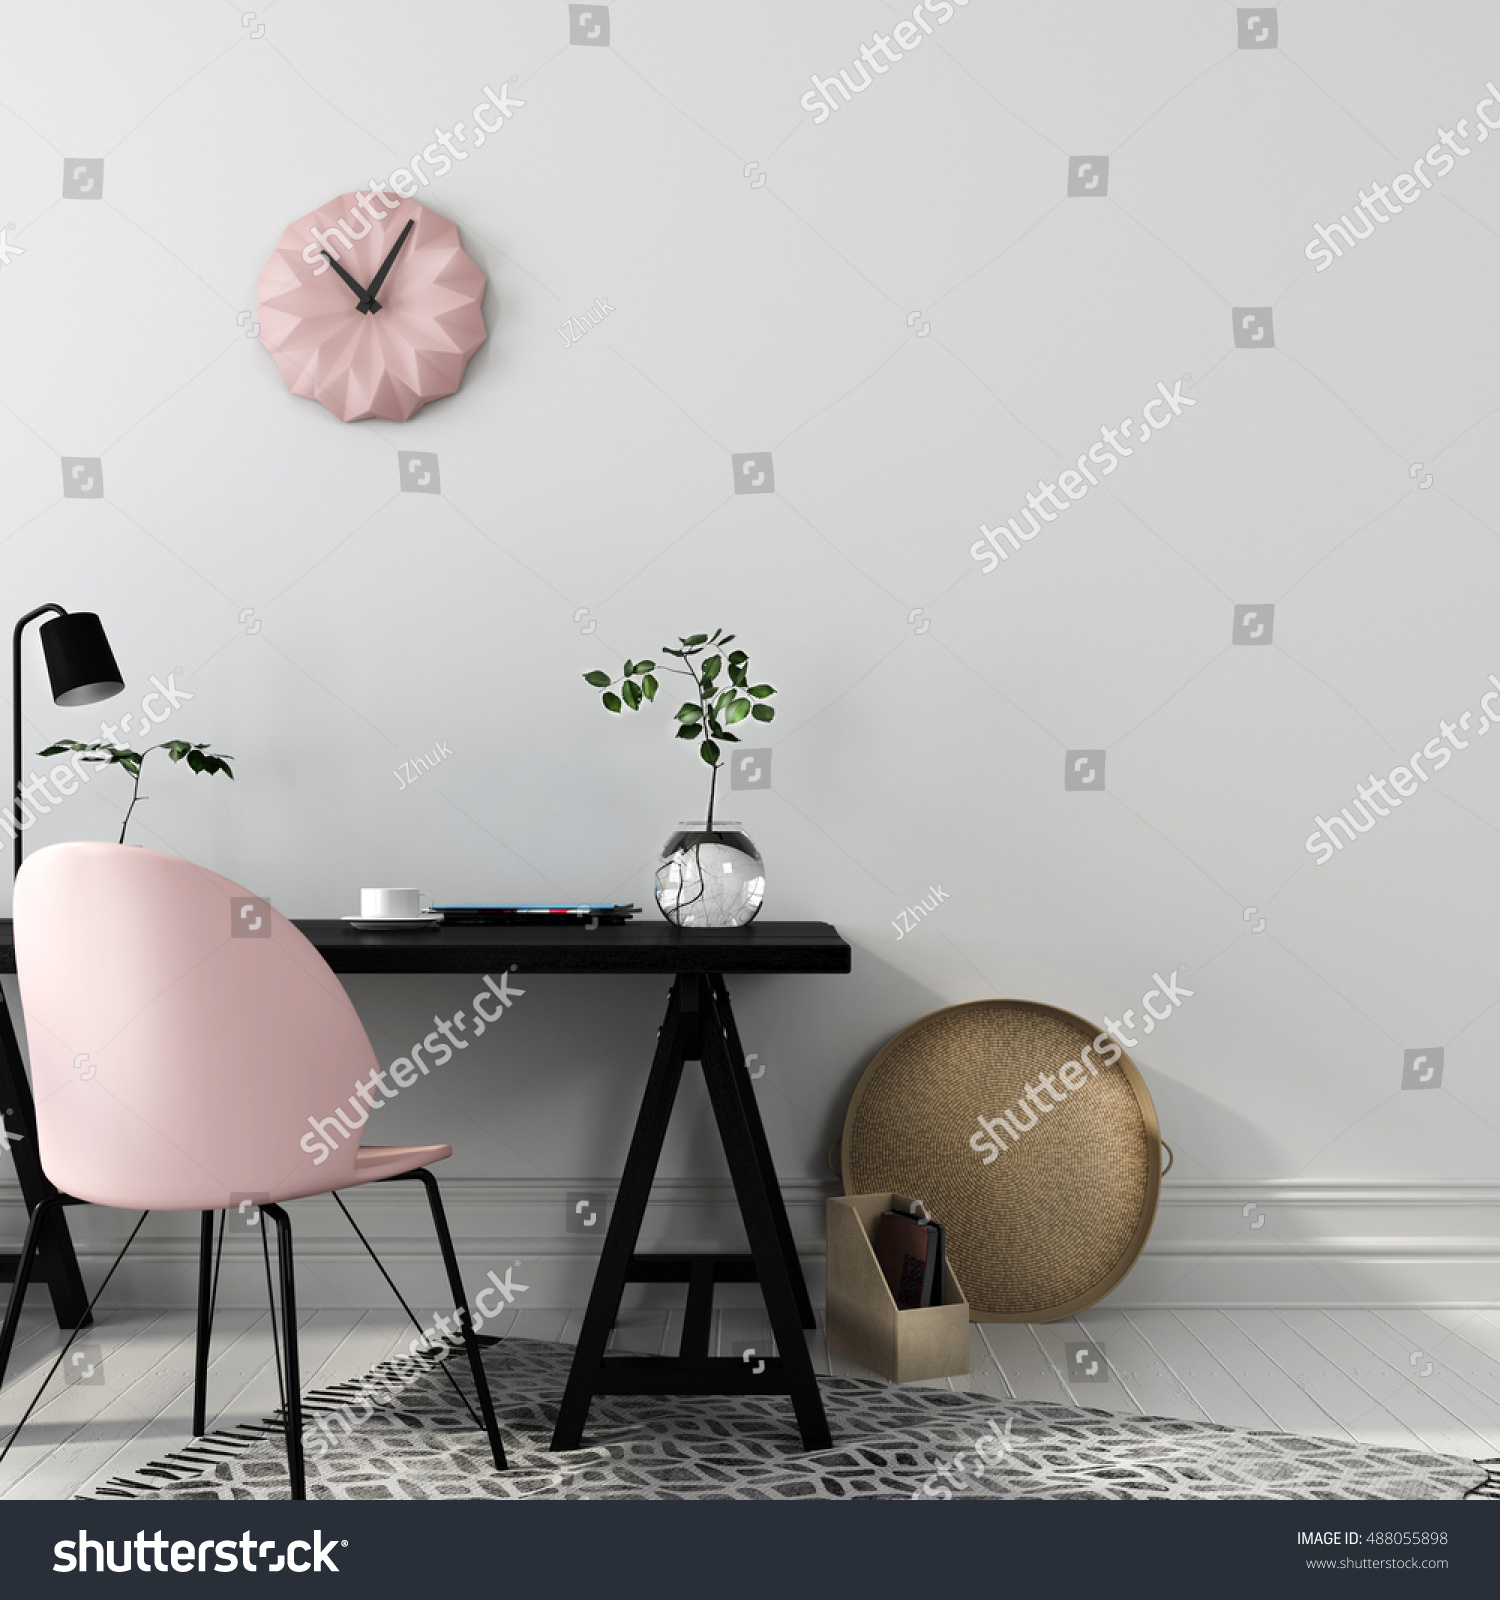 3D illustration of stylish workplace with an interesting combination of a black wooden table and a pink chair